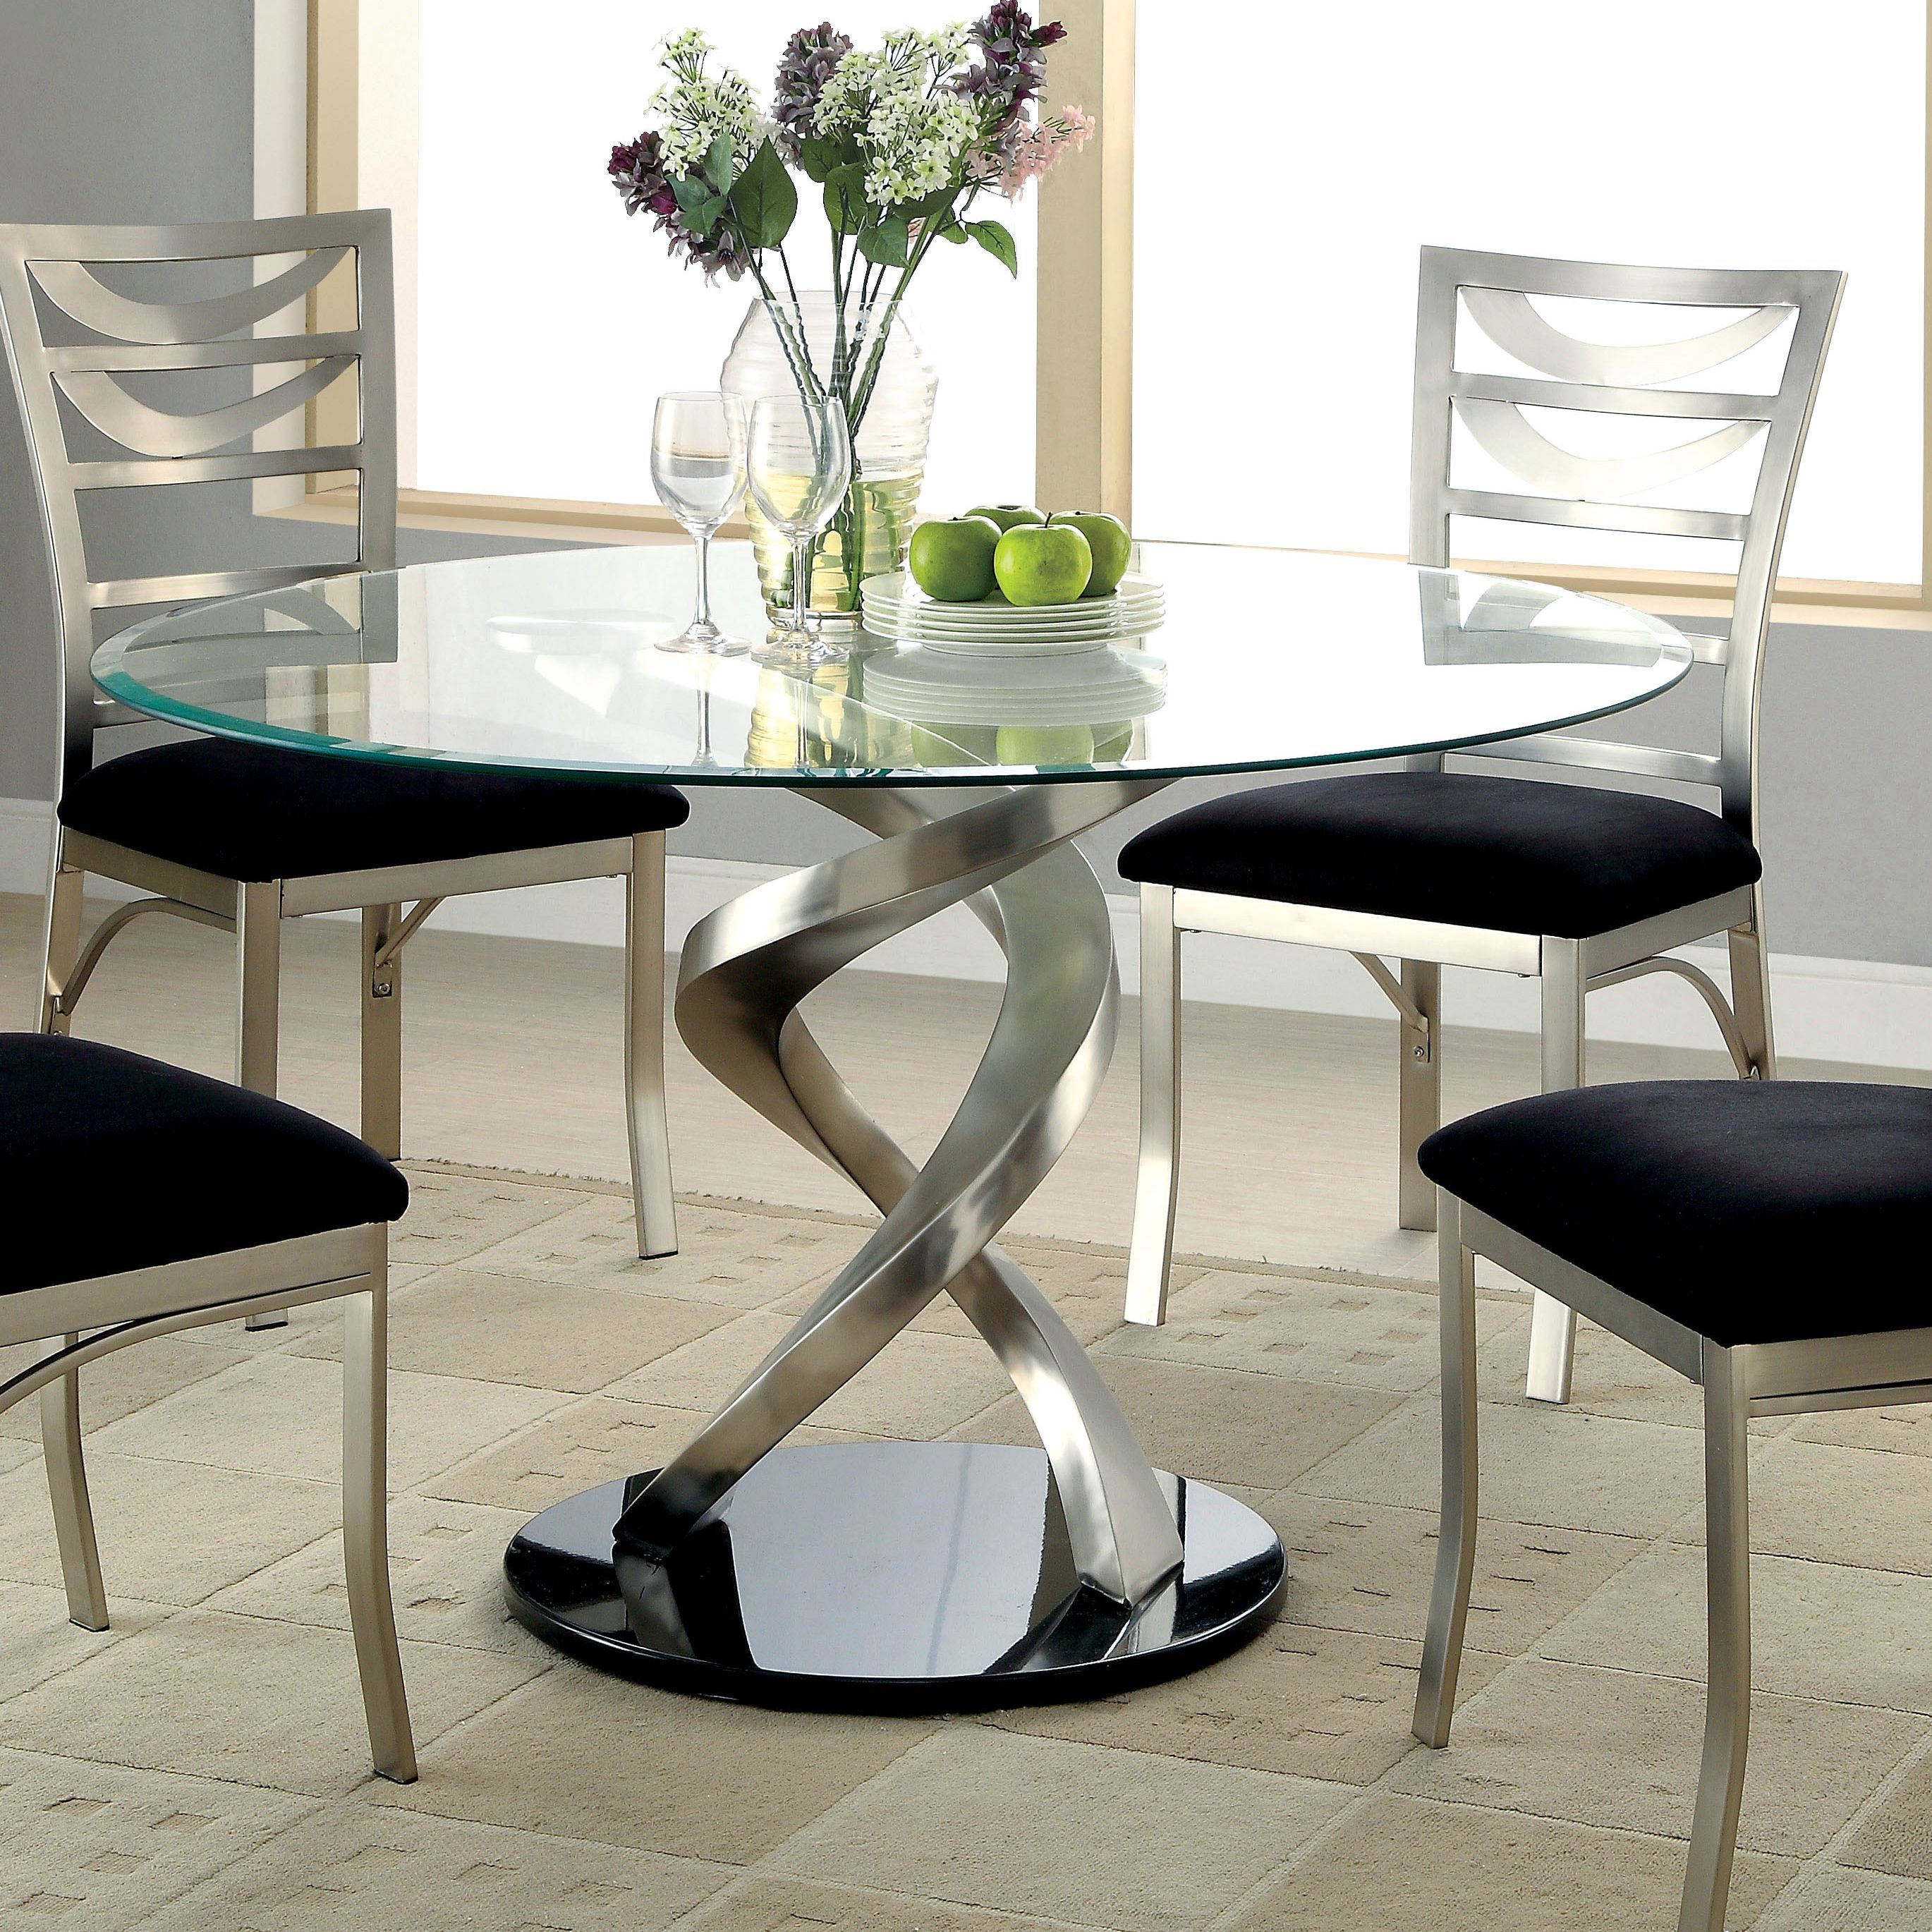 Bring Modern Sculpture Designs To The Dining Room With This Elegant And  Swirling Round Table.